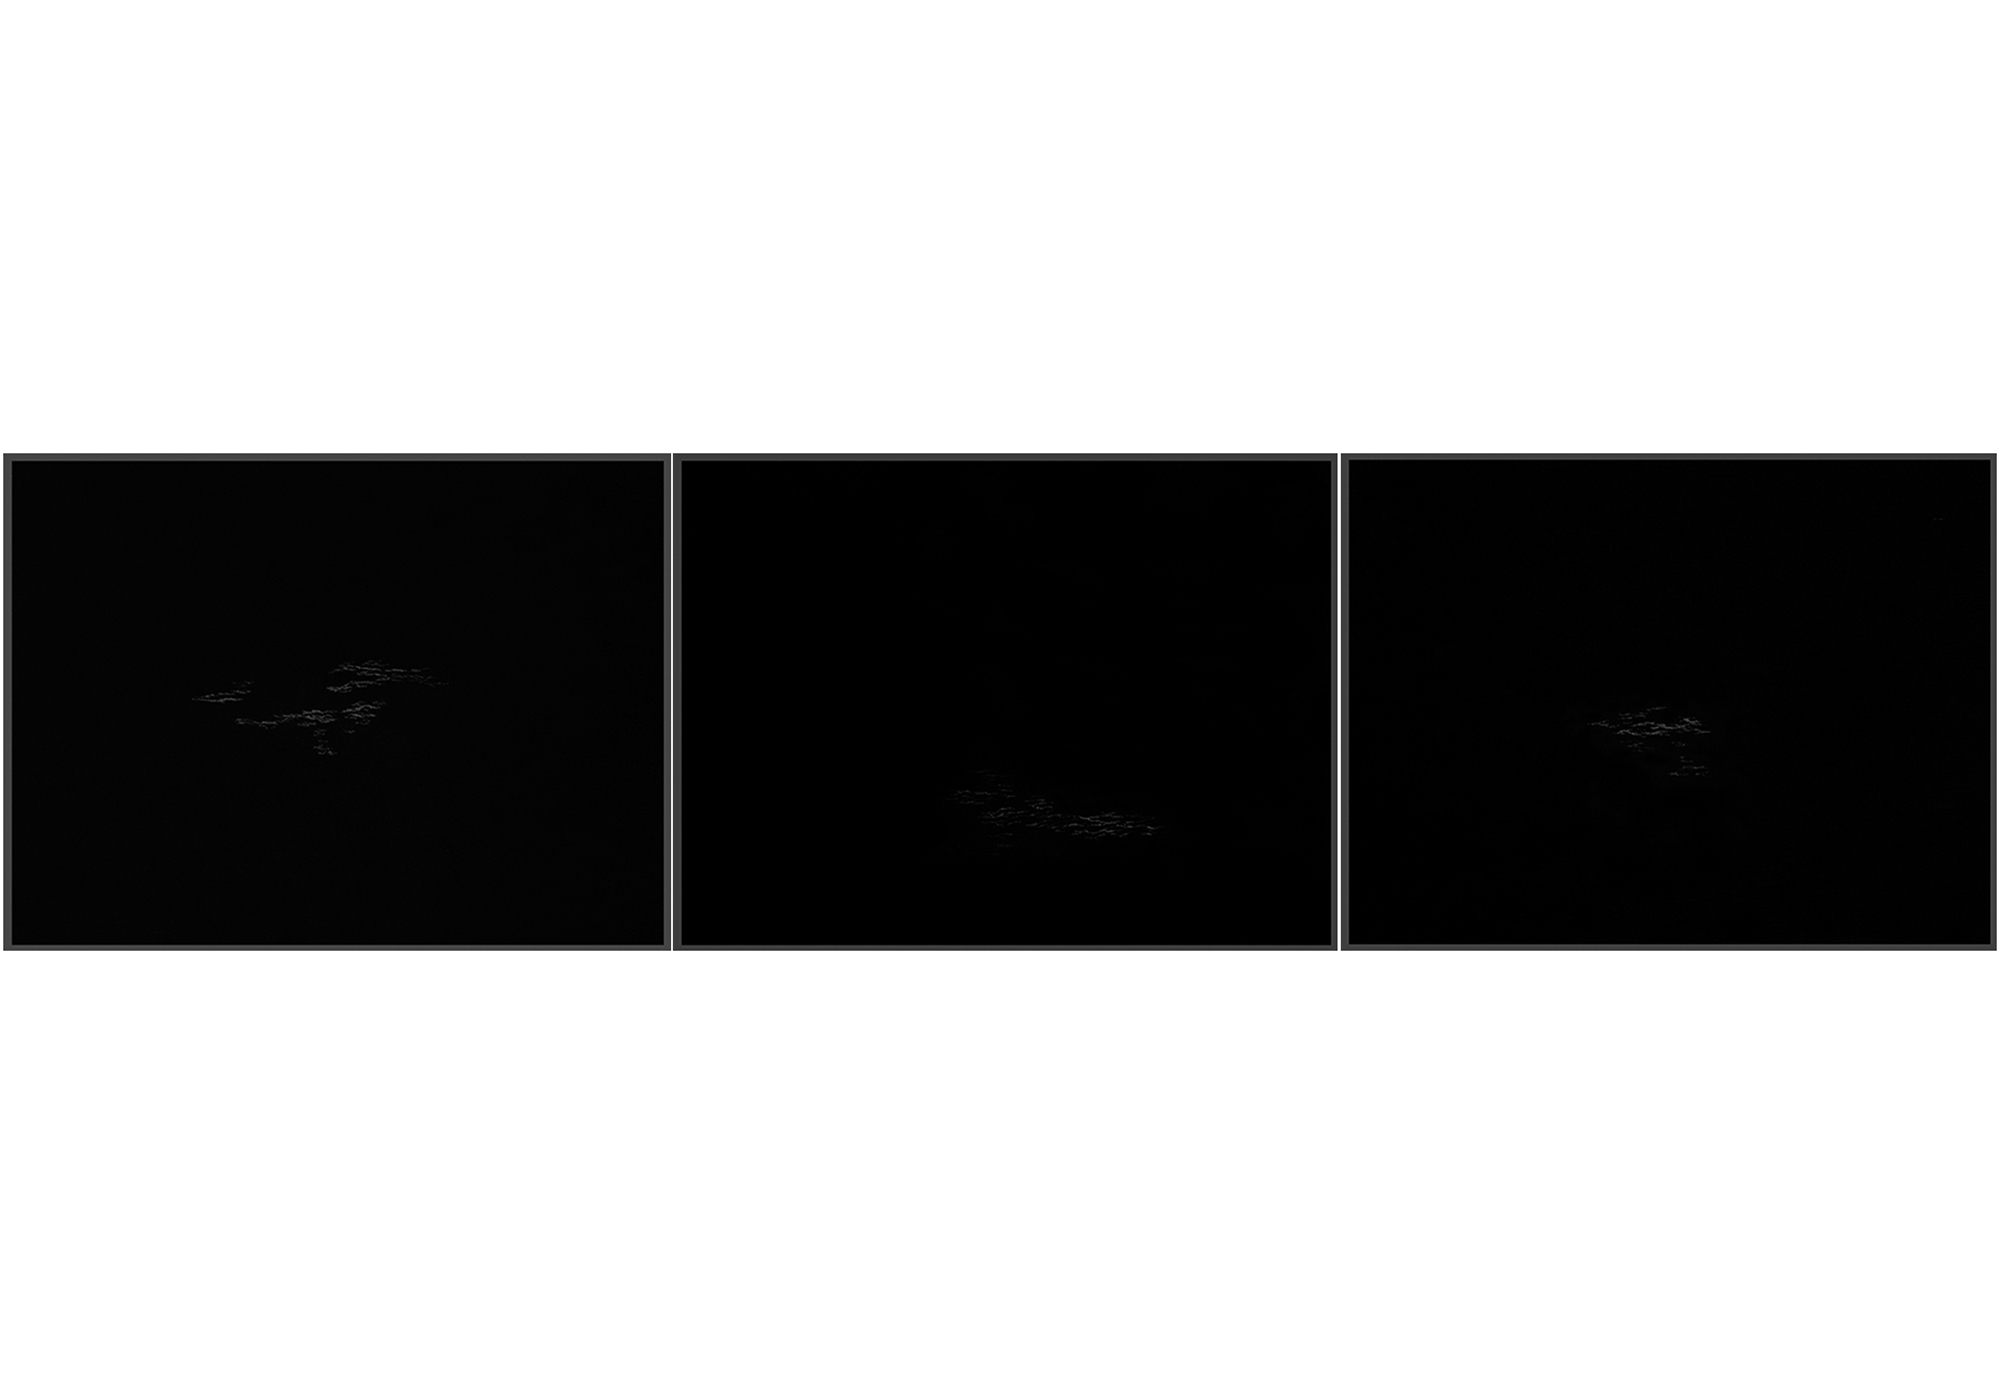 Lala Rukh  Nightscape II (12, 13, 14 - triptych) 2011 Graphite on carbon paper 20.32 x 26.67 cm each